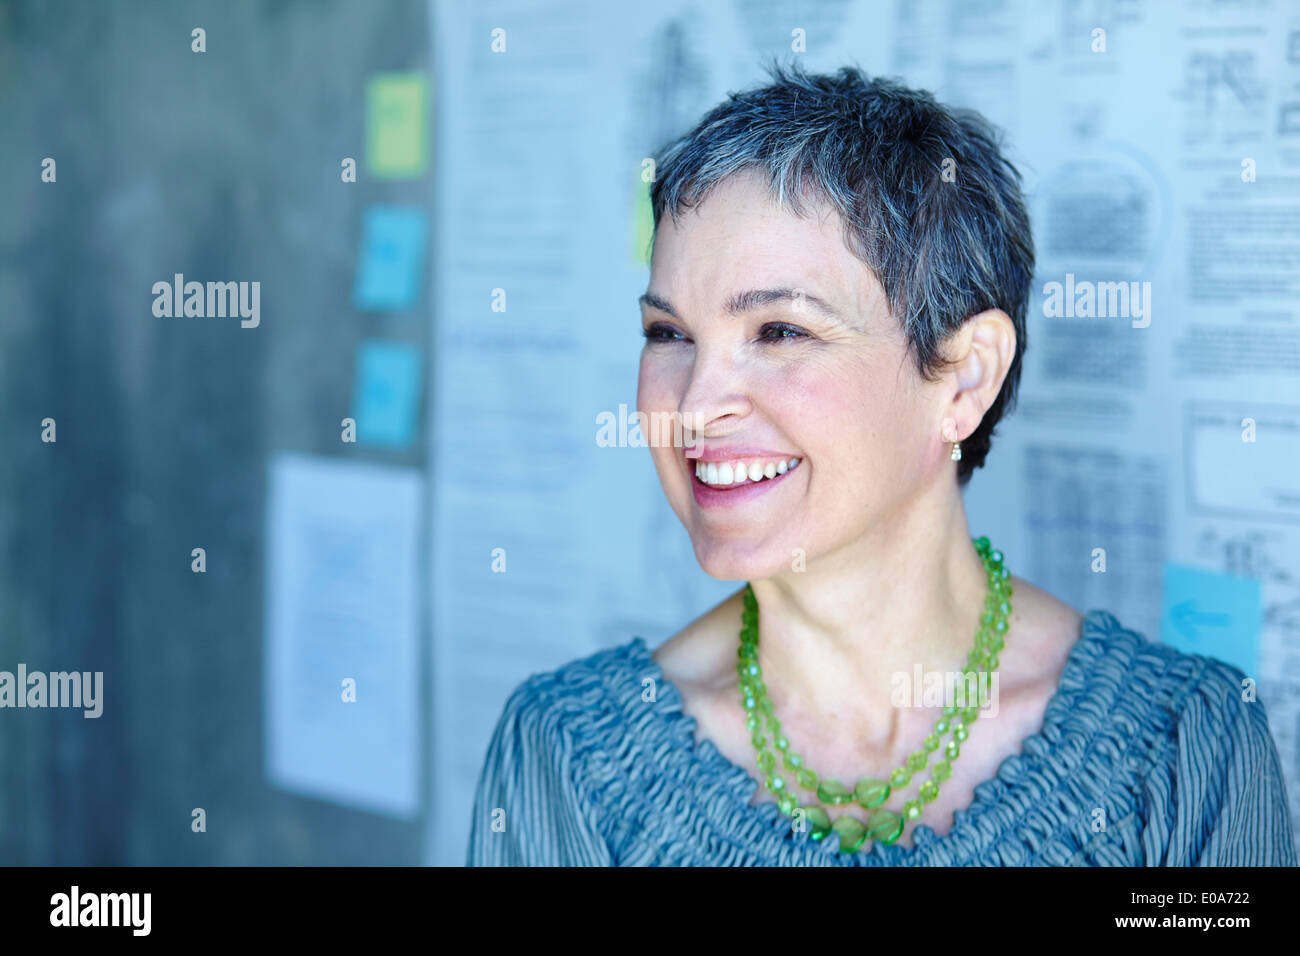 Portrait of smiling mature businesswoman in office Photo Stock